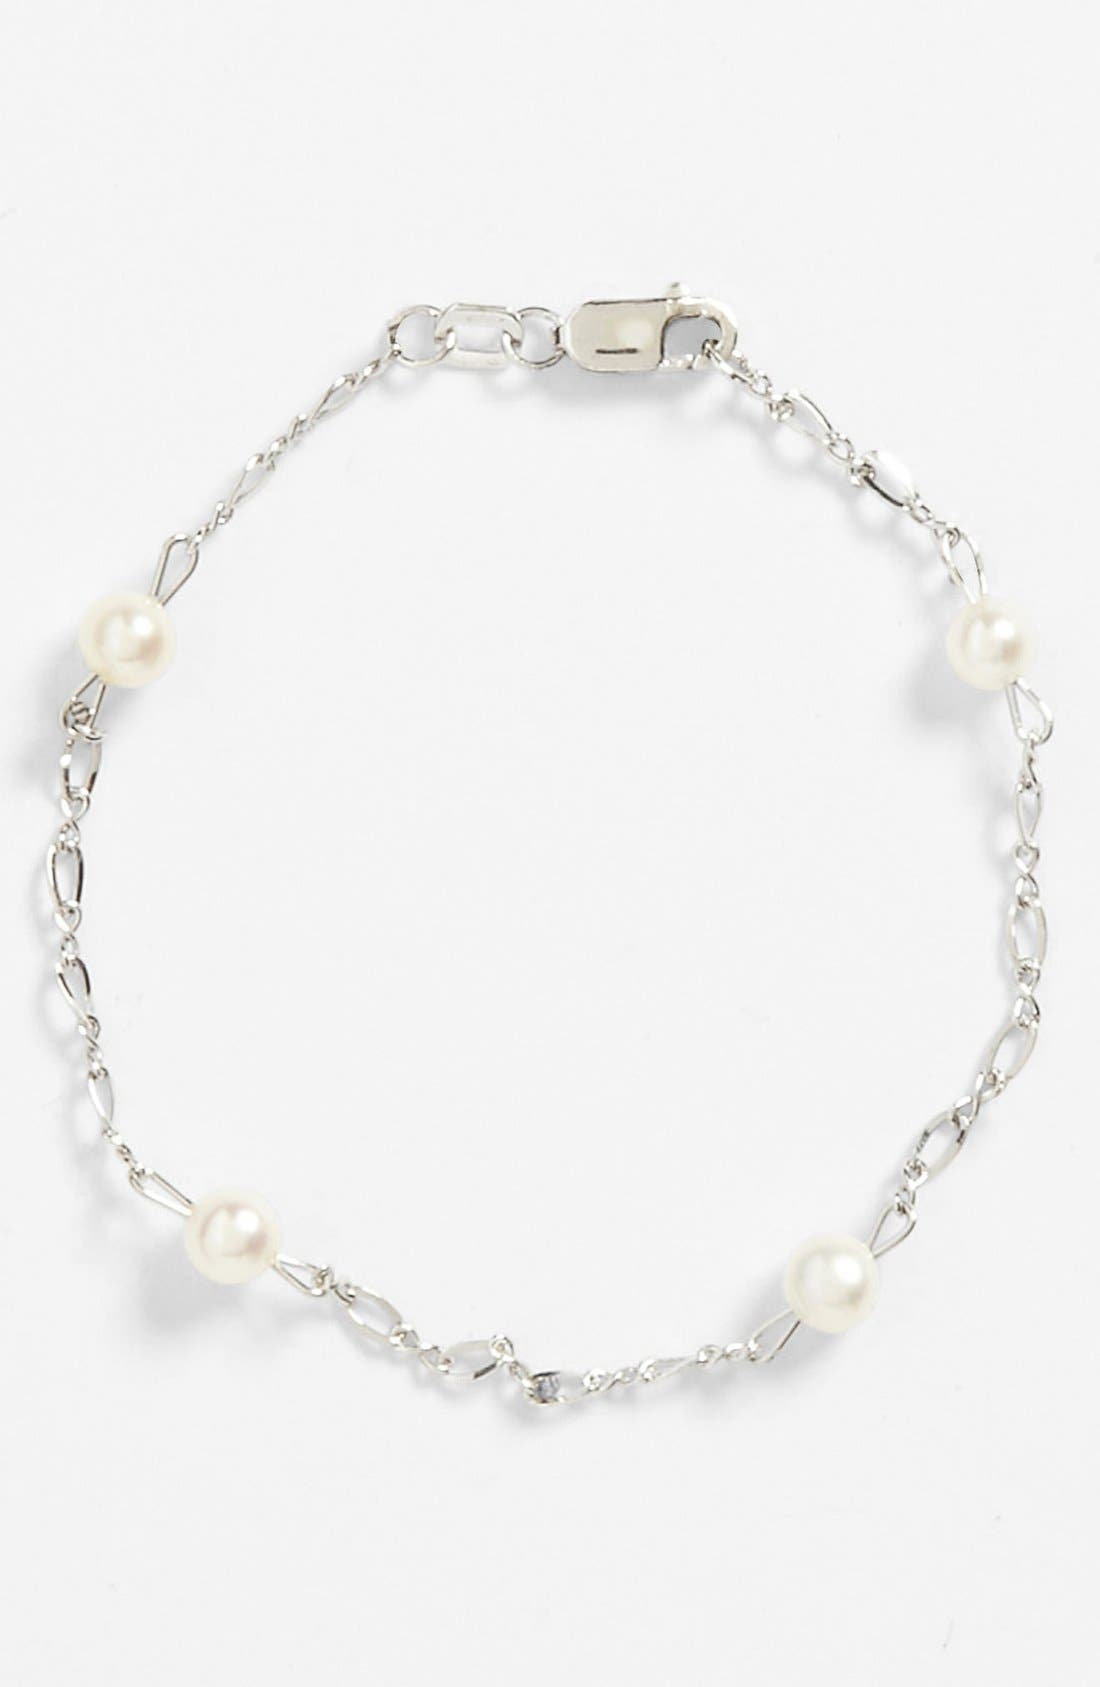 Sterling Silver & Cultured Pearl Bracelet,                         Main,                         color, White